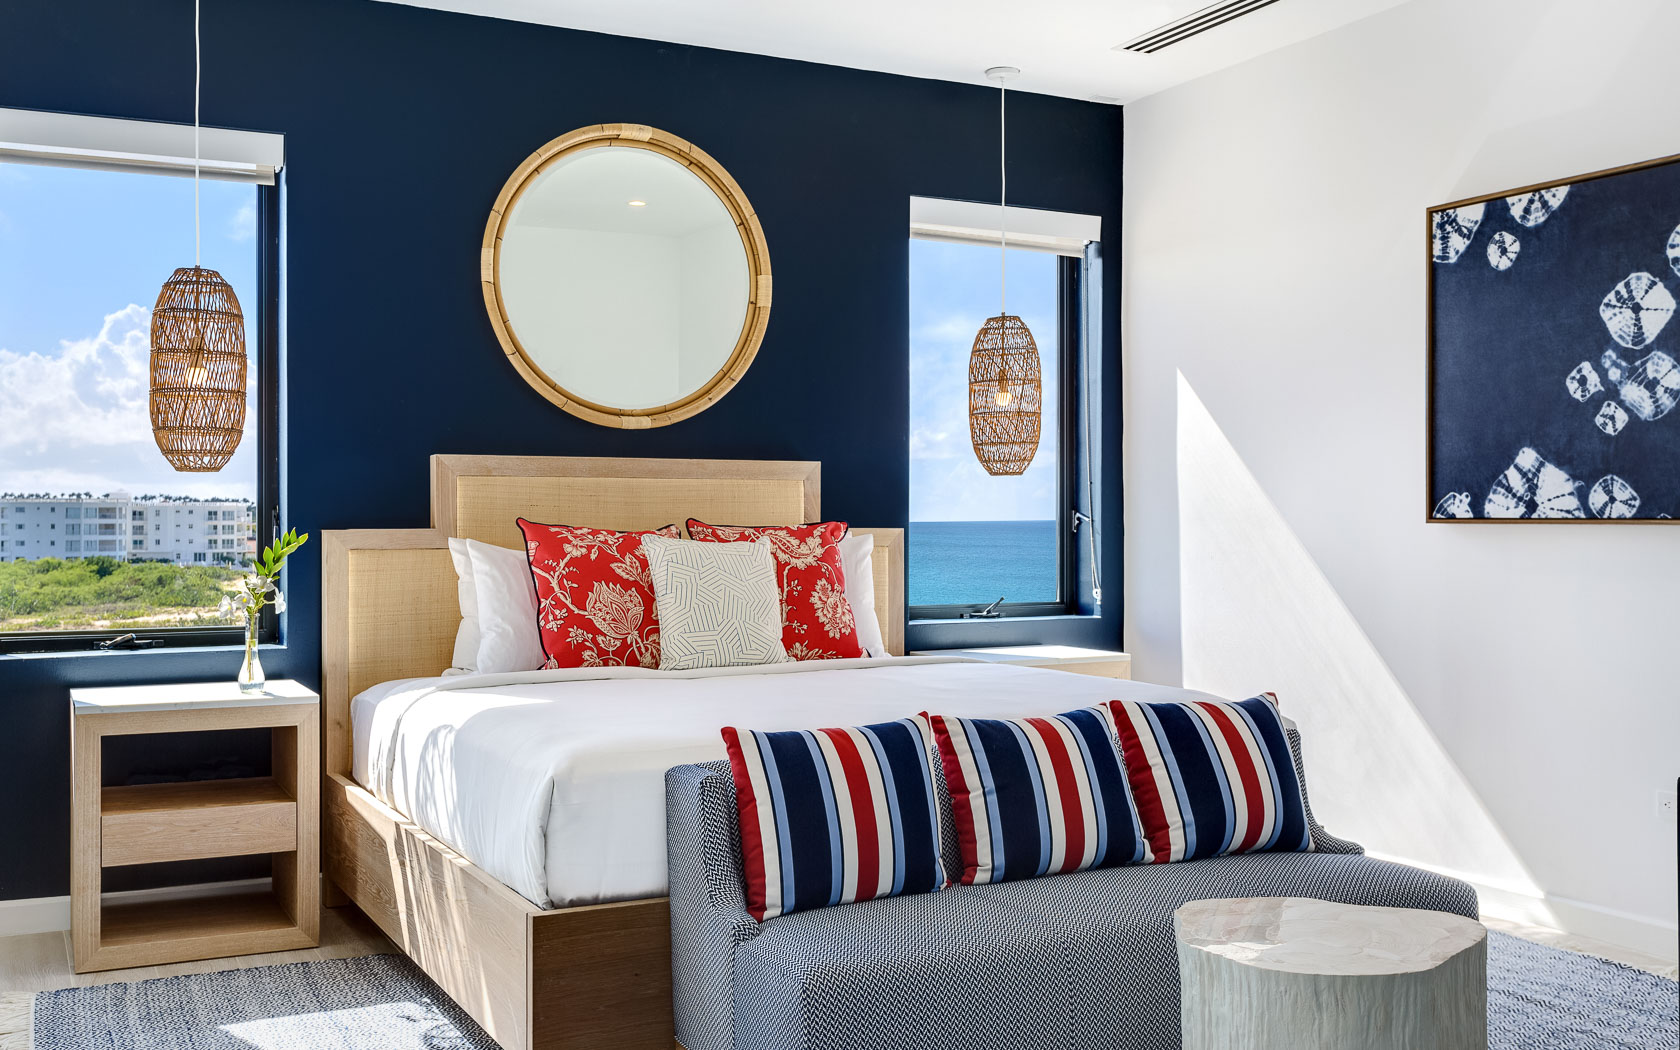 large bed in center of room with two windows and navy blue accent wall